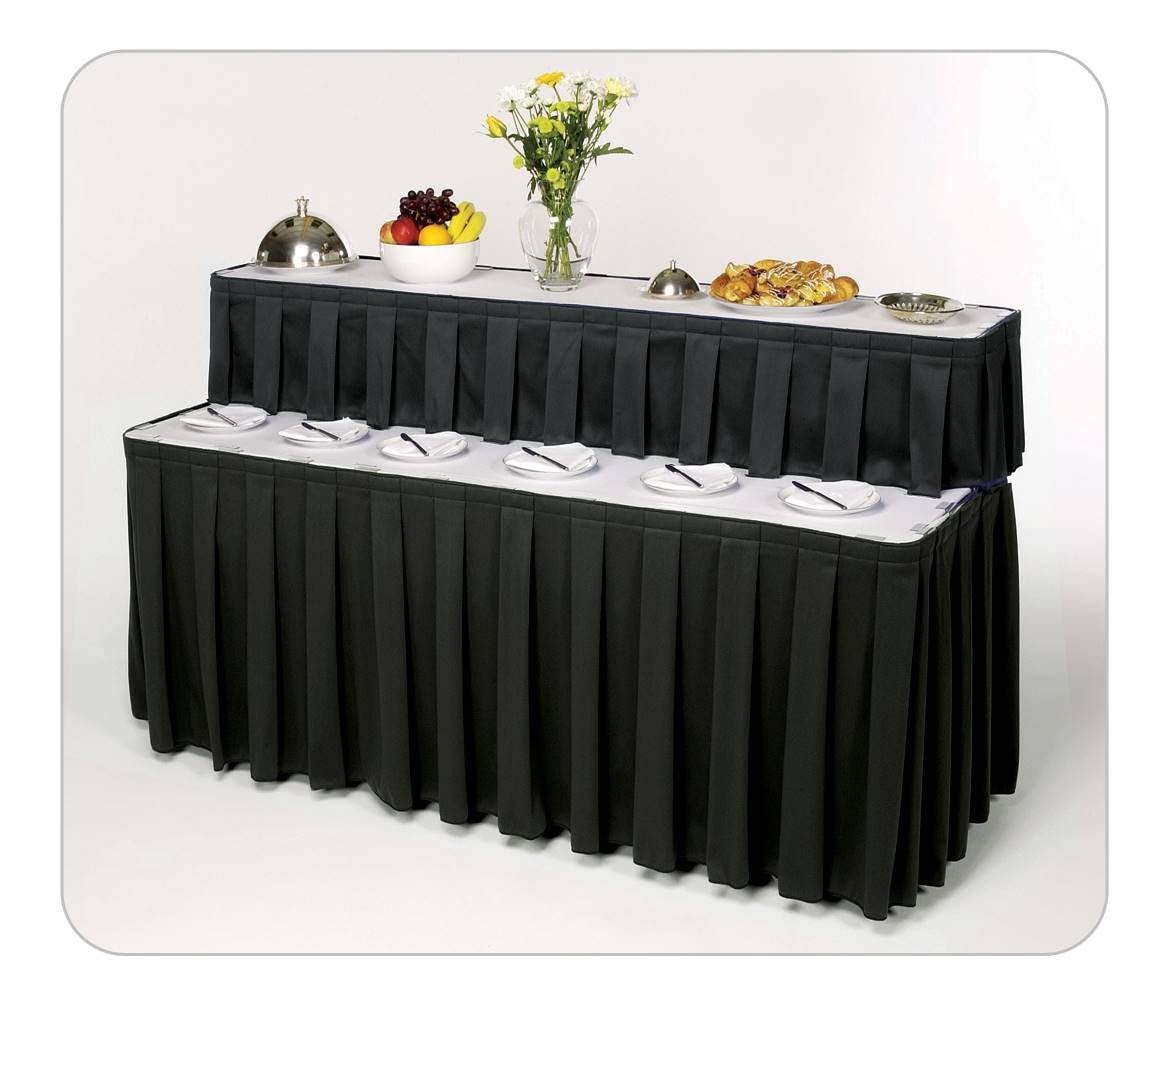 Buffet table skirting - Wyndham Black Boxed Pleat Table Skirting On A Sico Two Tier Catering Table